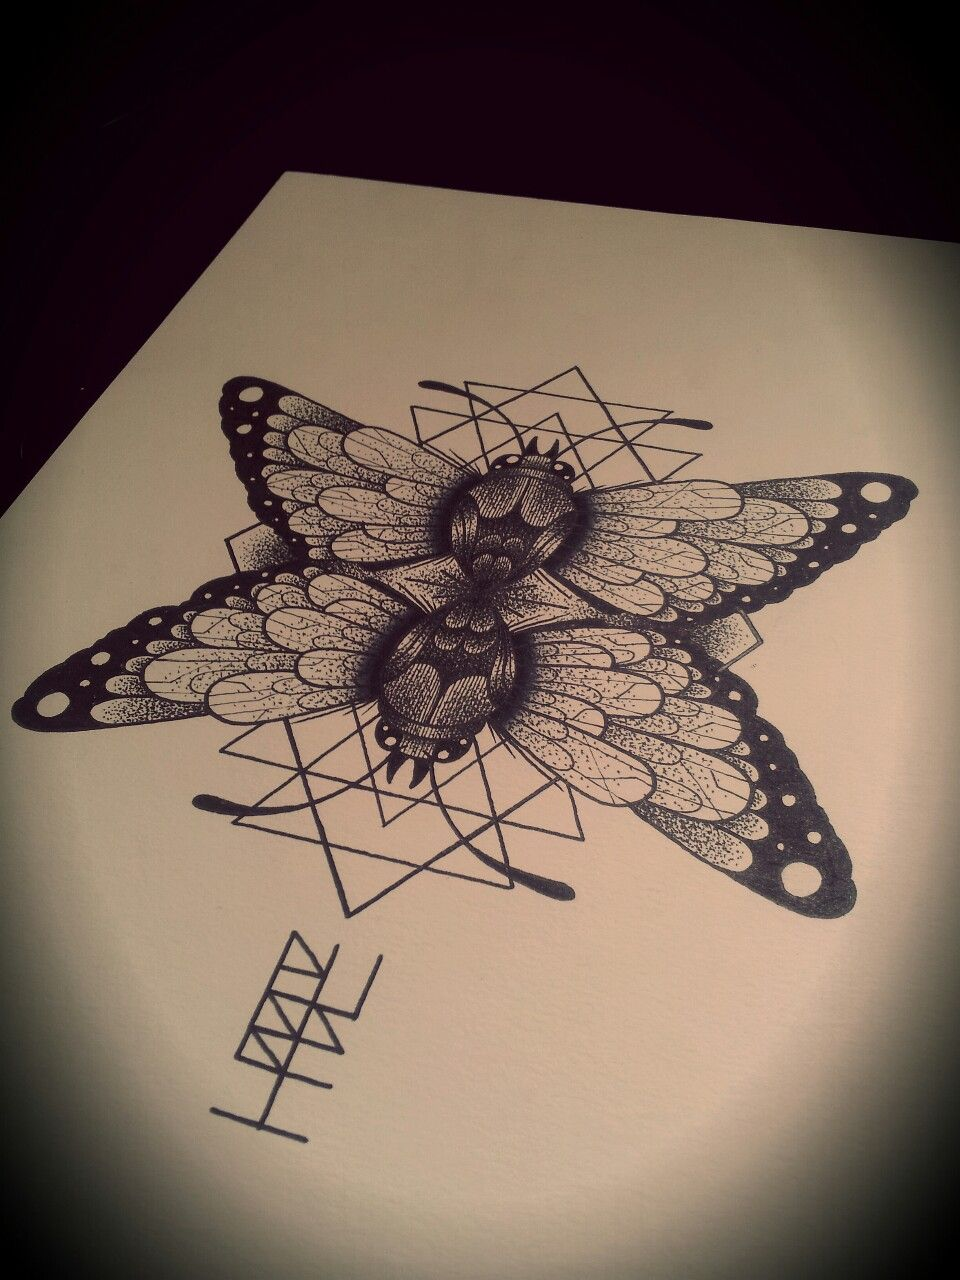 Burpibrebzy burpi brebzy tattoo time pinterest tattoo moth